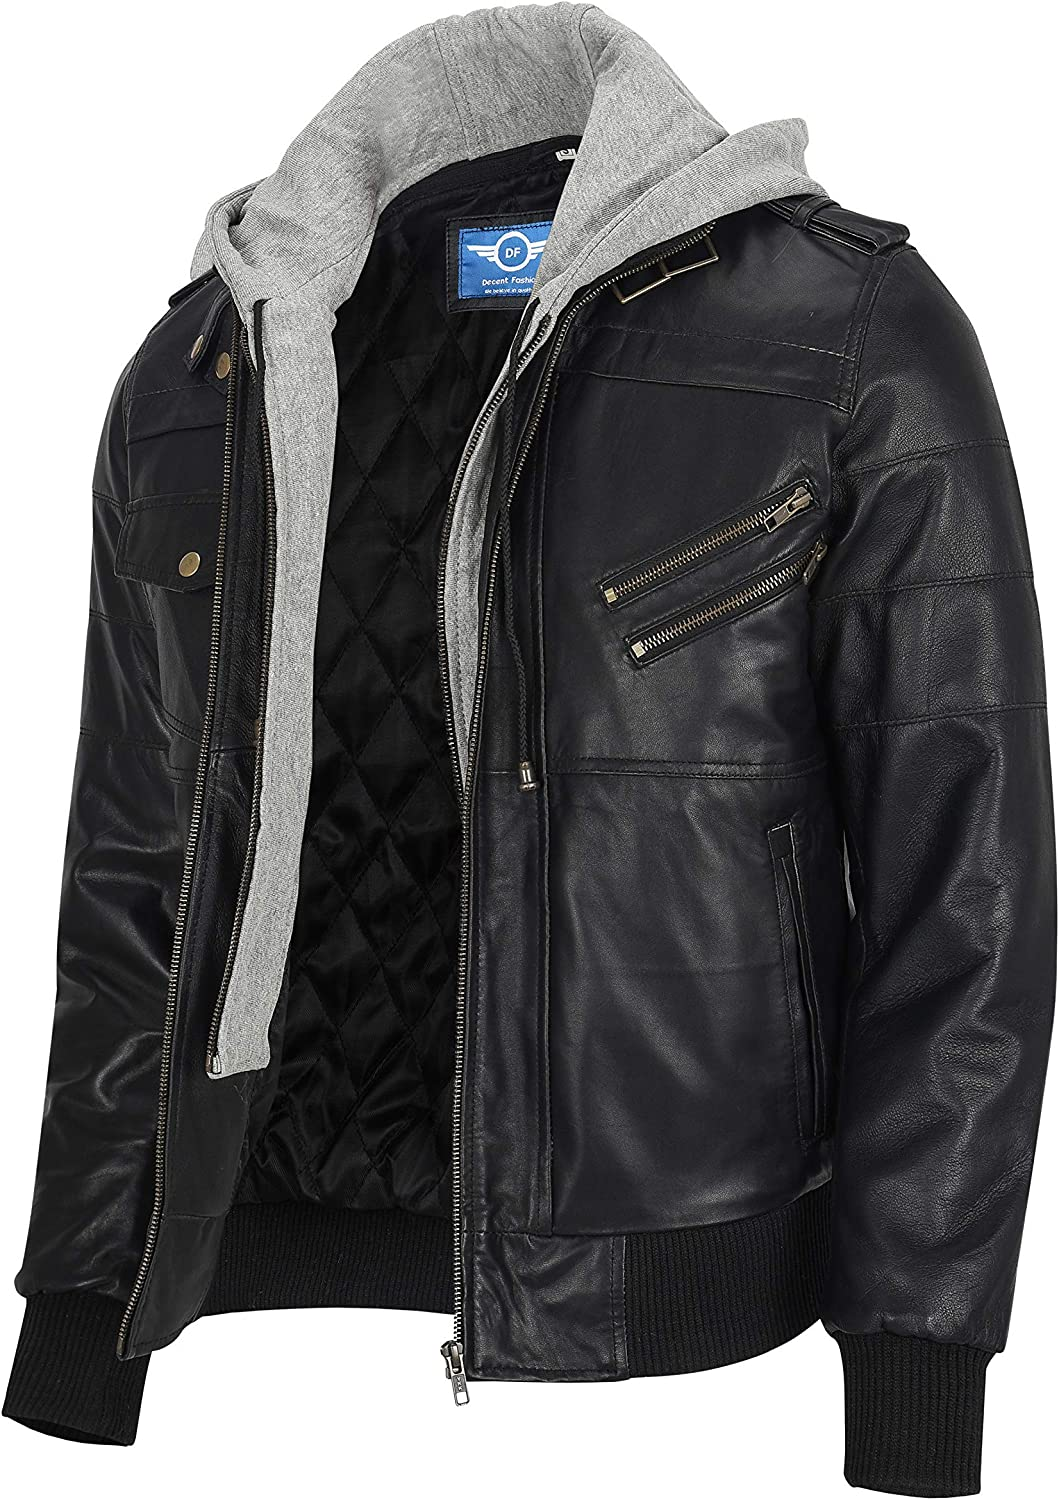 Men Brown Leather Motorcycle Jacket with Removable Hood - Leather Jackets For Men